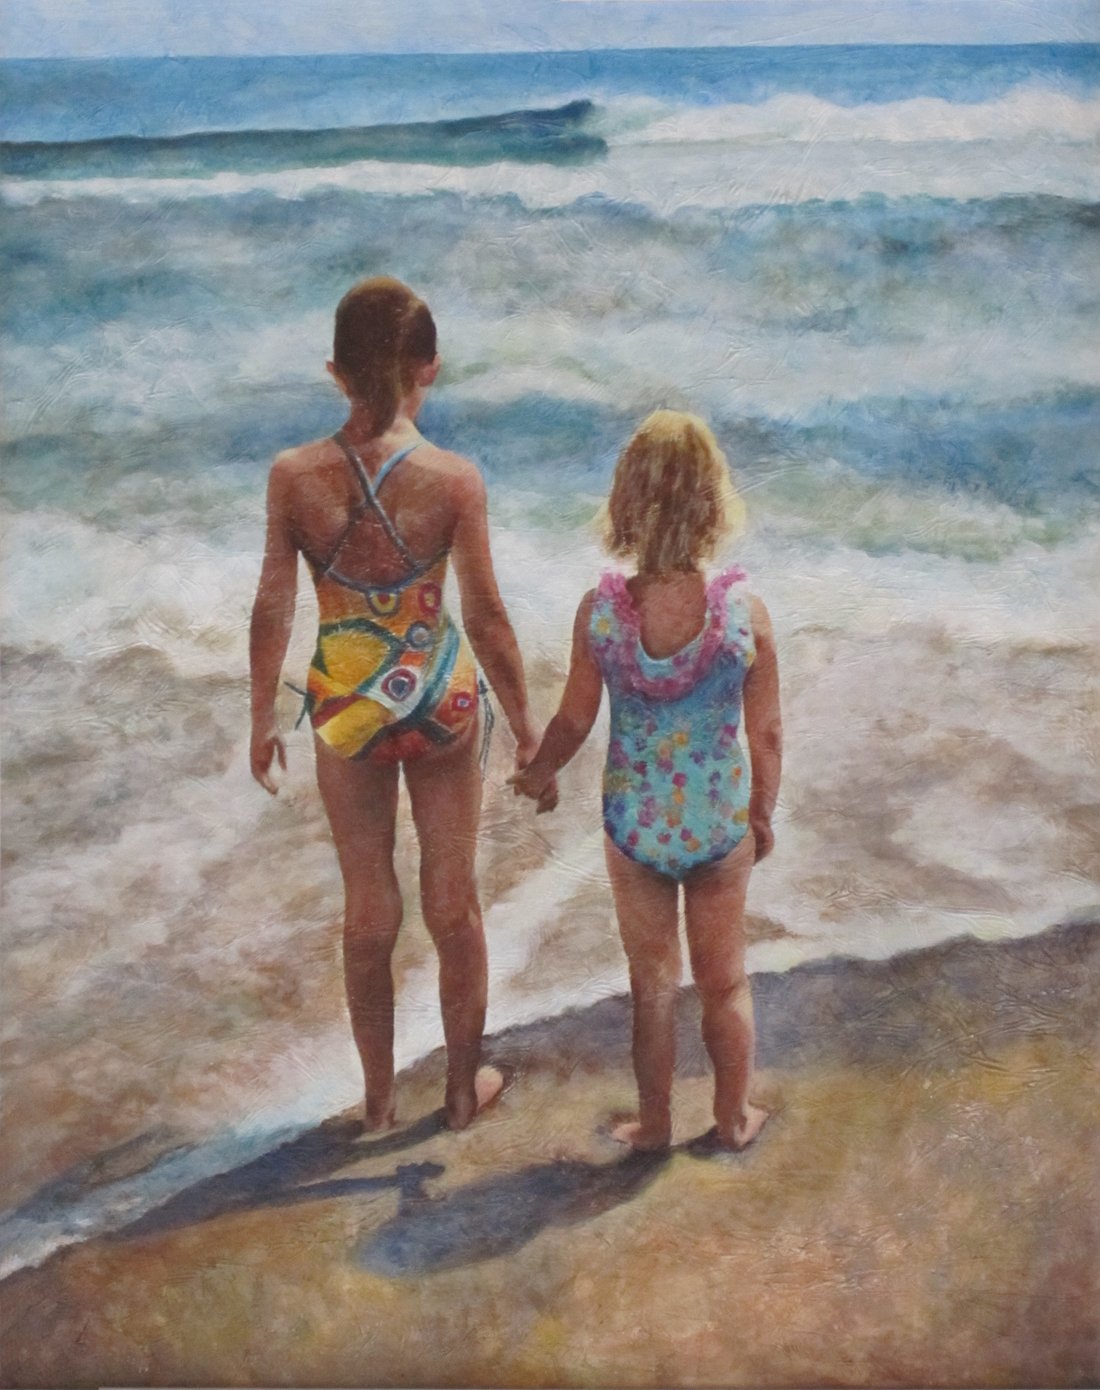 Two young girls holding hands watching the ocean.